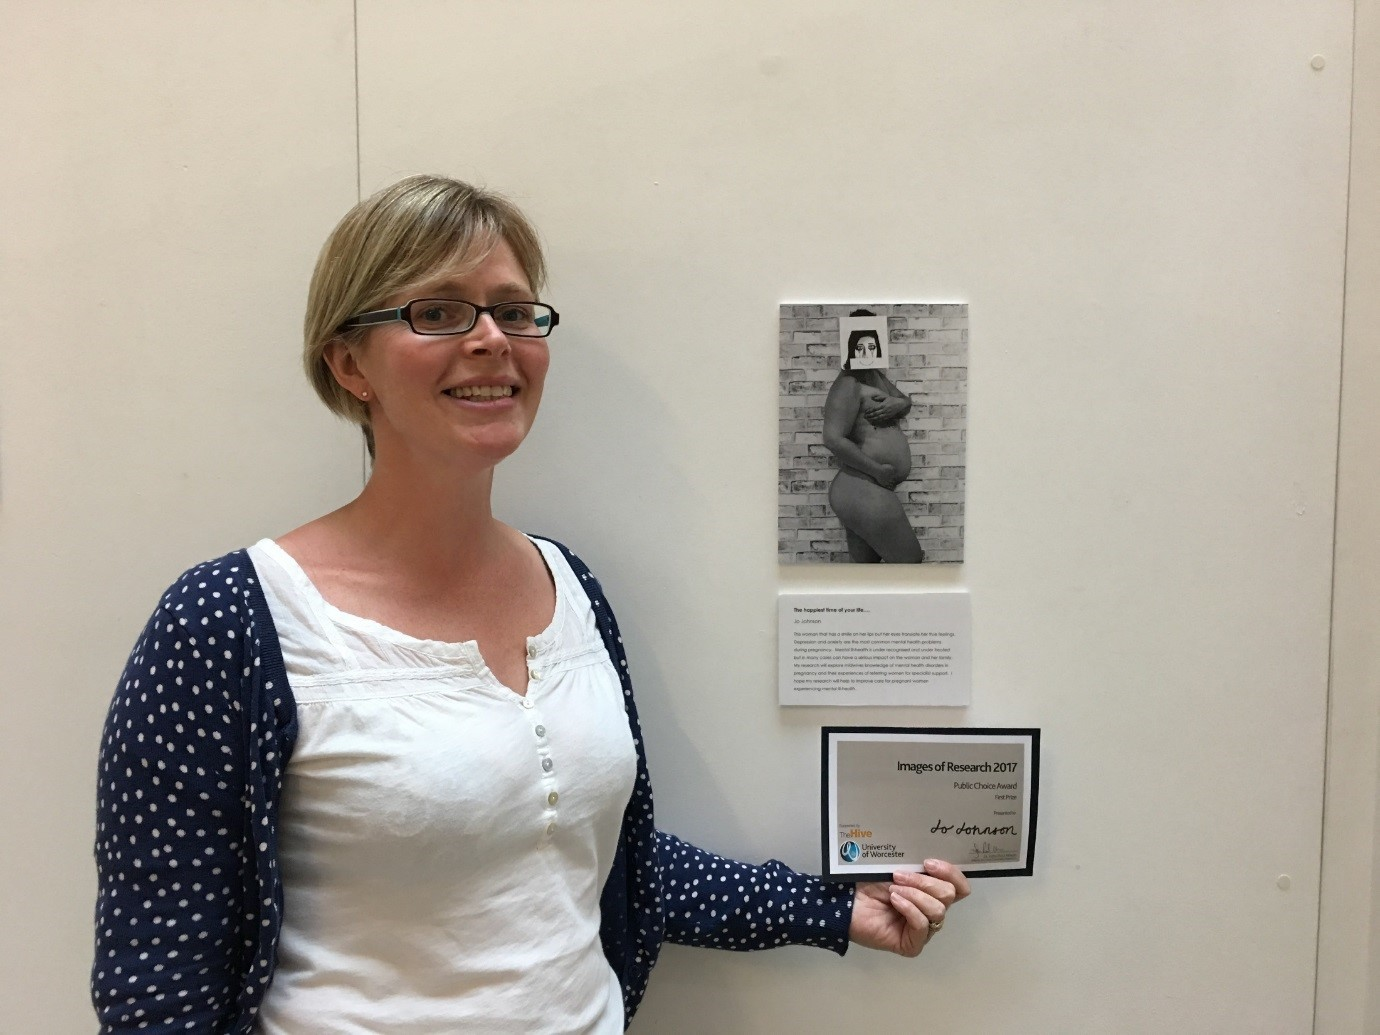 PhD student, Jo Johnson, with her entry on display at the University of Worcester Images of Research exhibition.